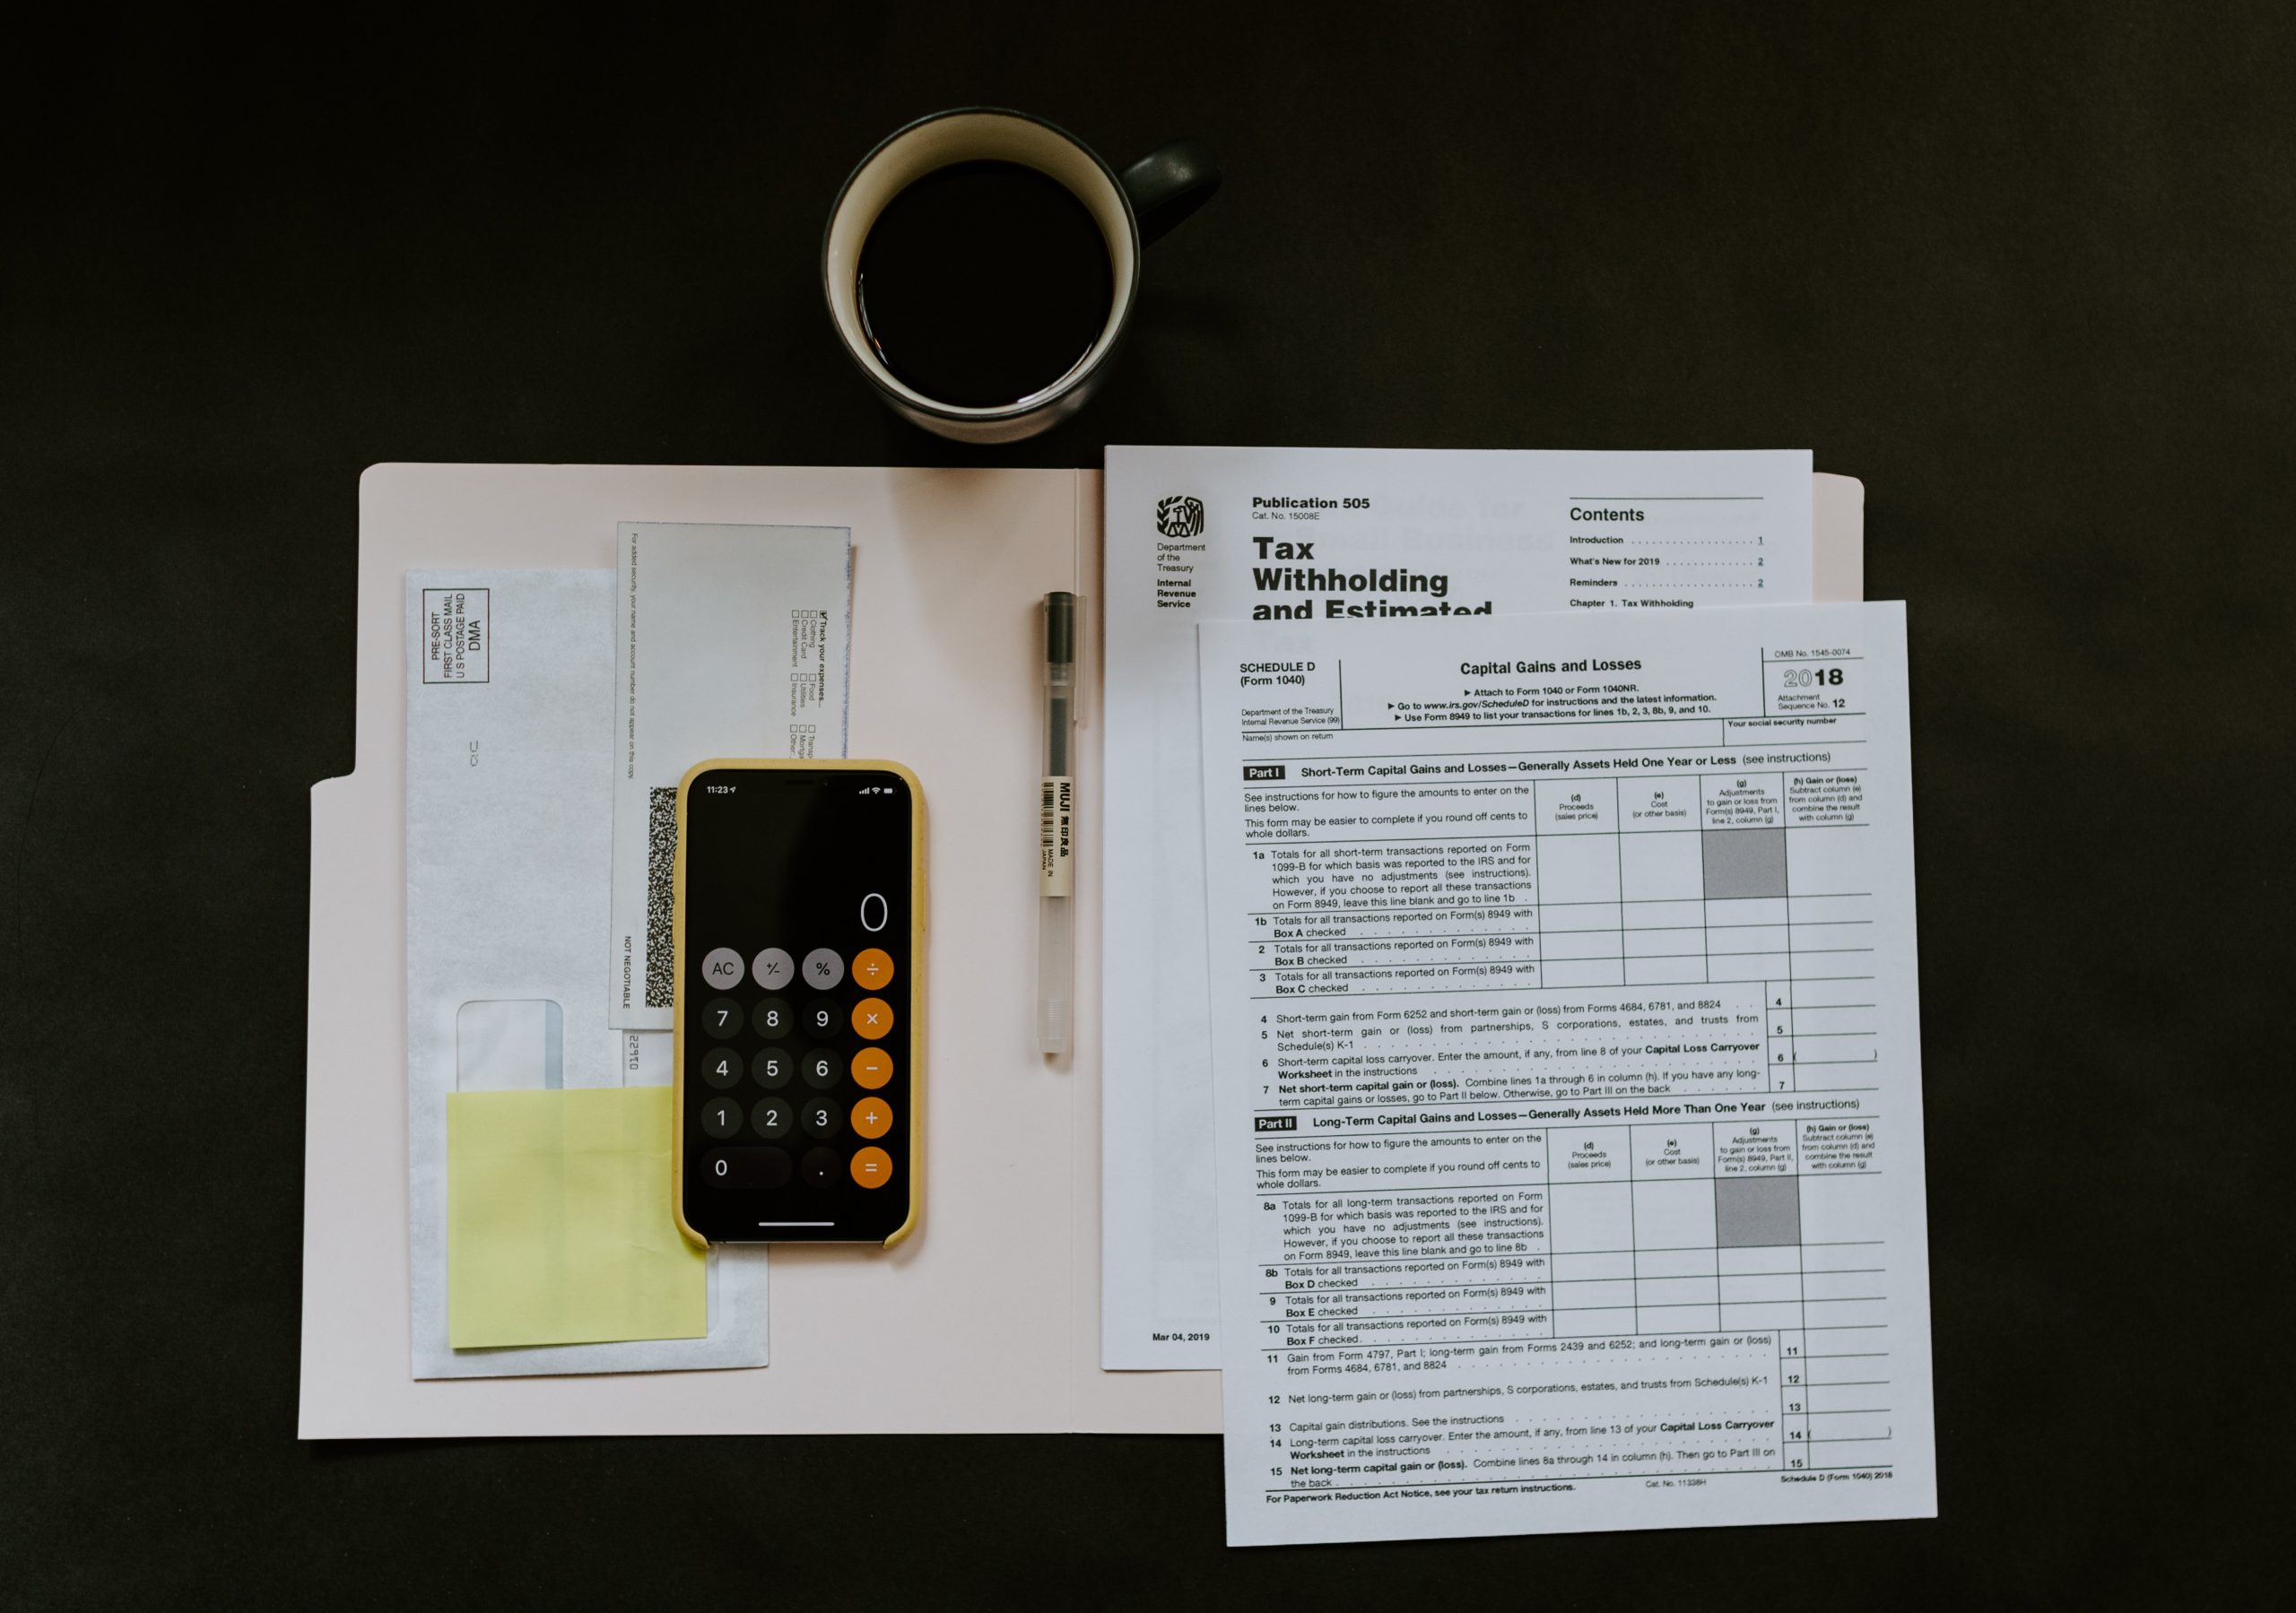 Maximize Your 179 Tax Deduction